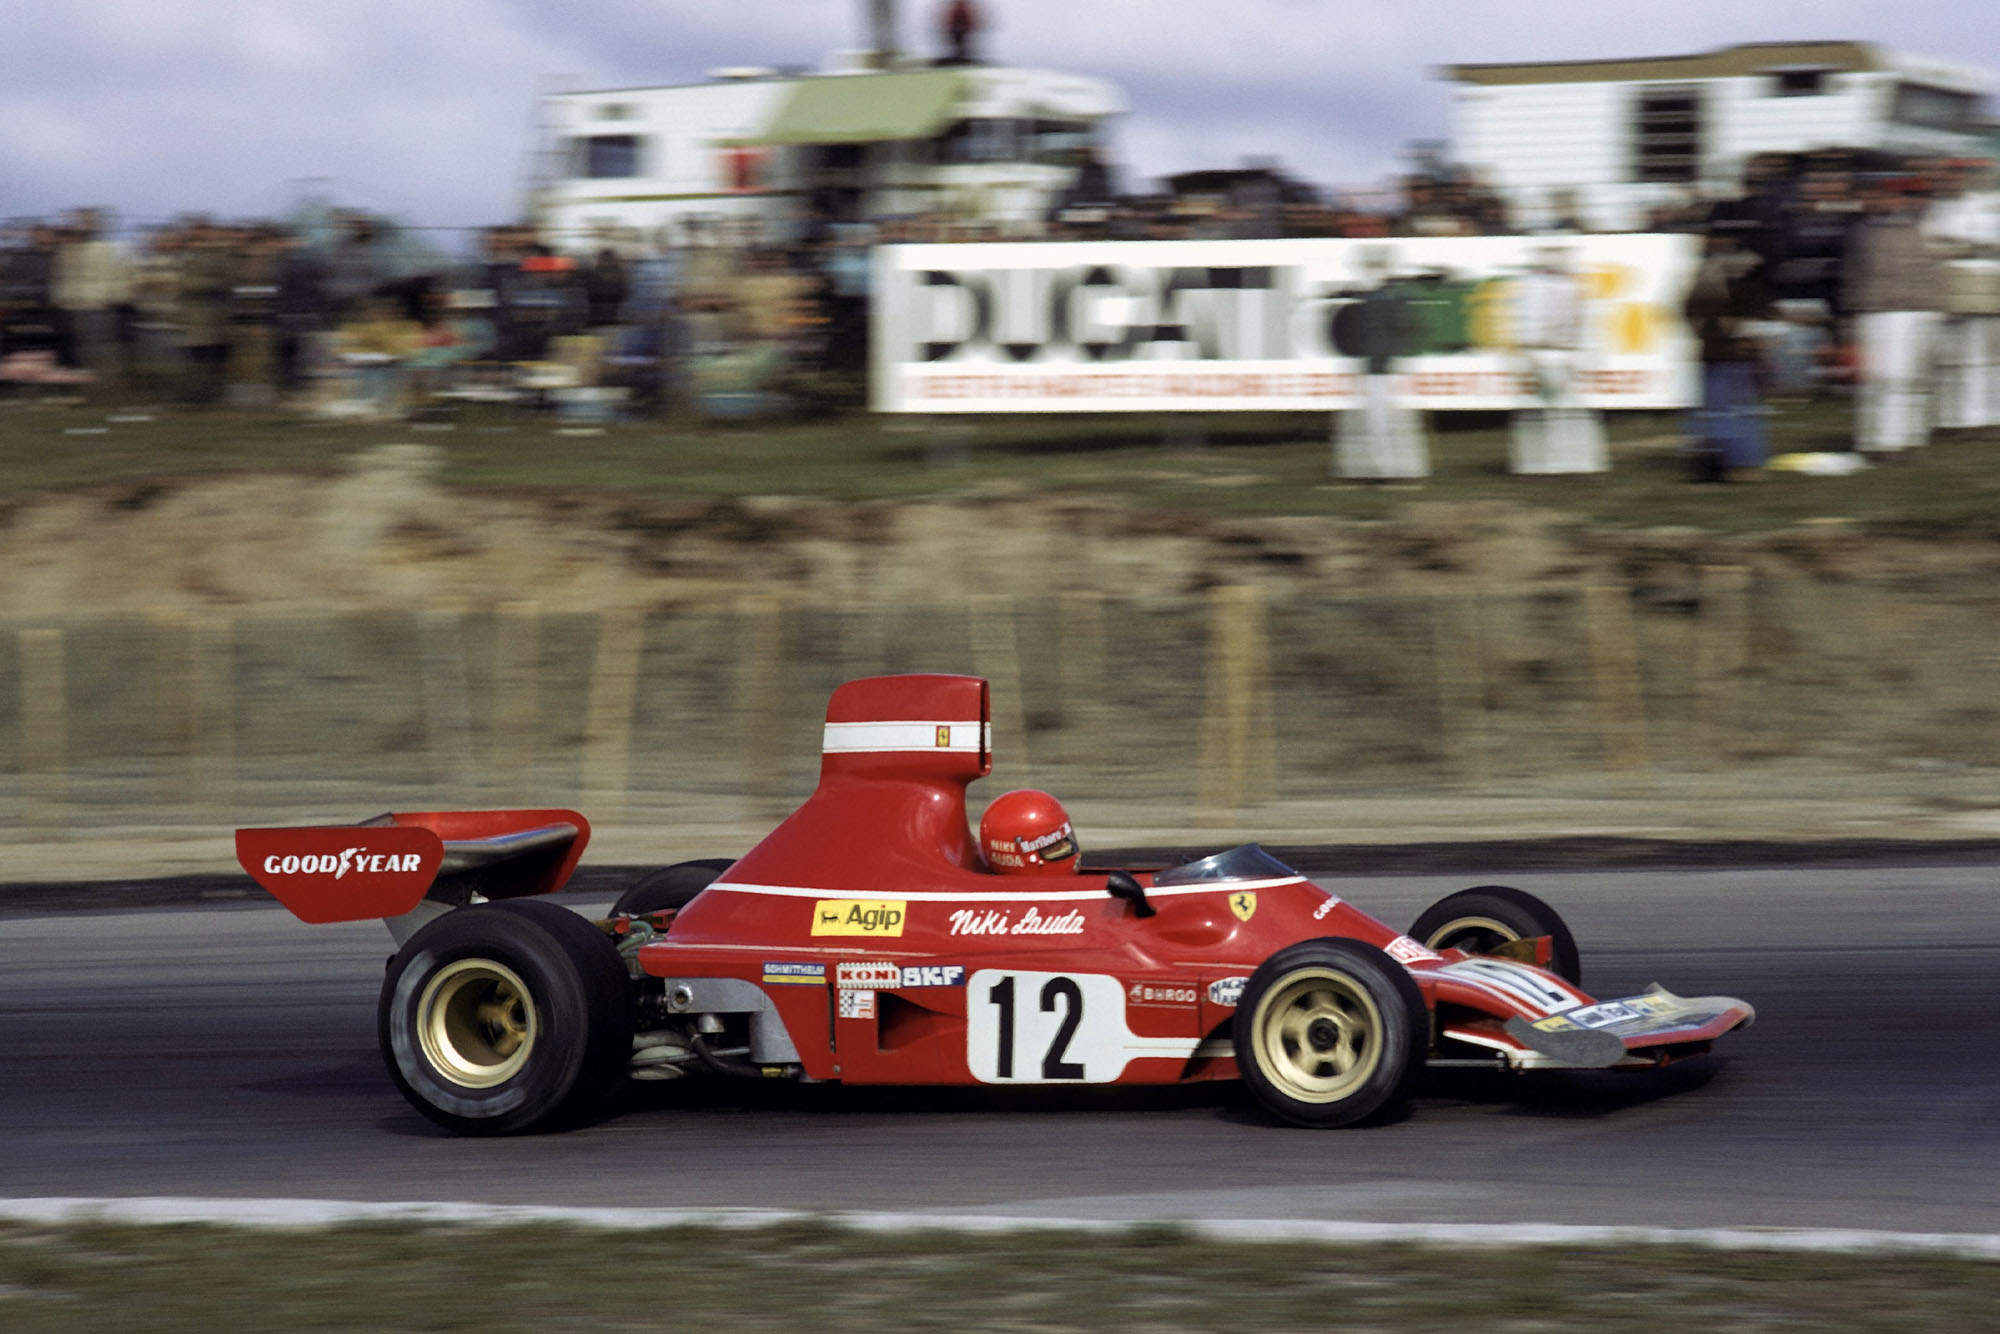 Niki Lauda competing for the Ferrari at the 1974 Canadian Grand Prix